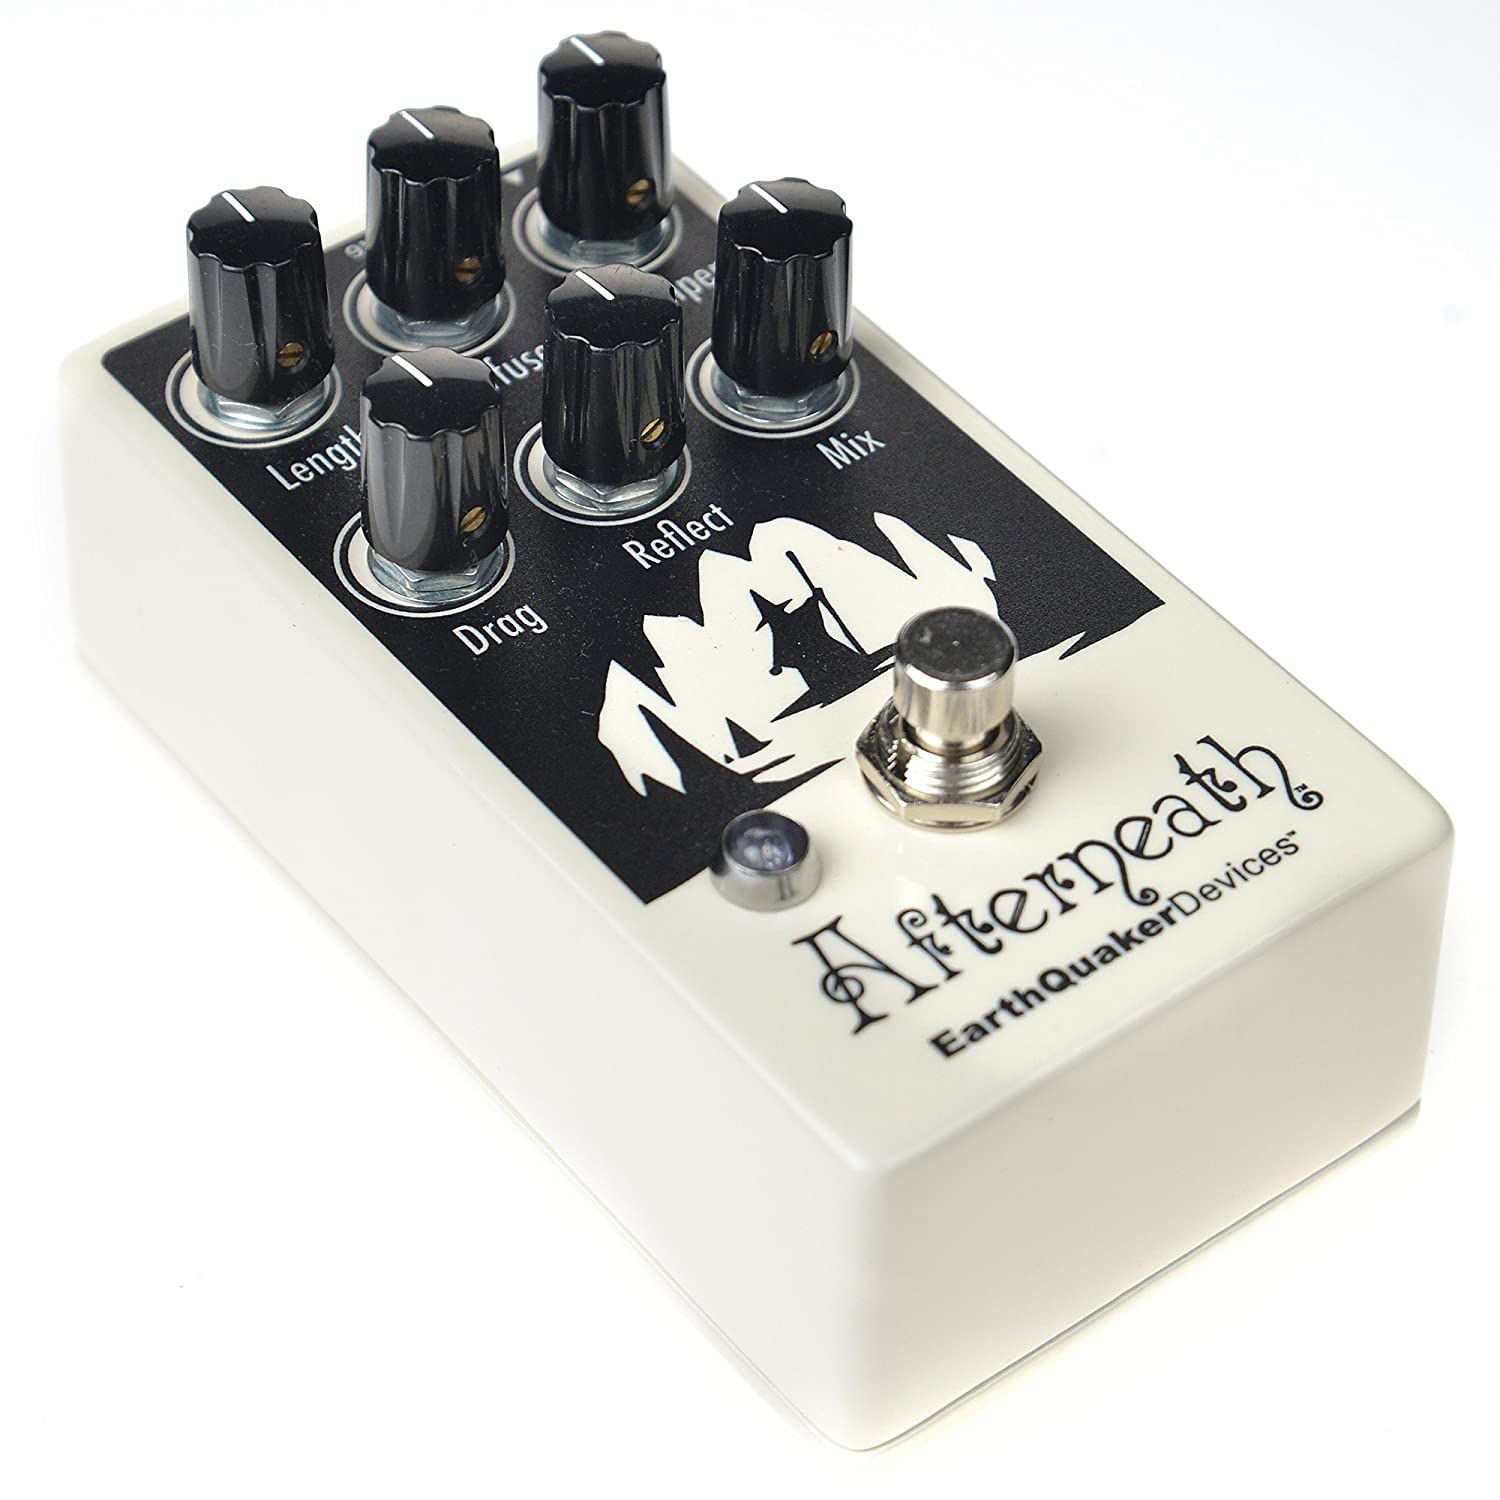 Amazon.com: Earthquaker Devices Afterneath Pedal Invert Glow-in-the-Dark v2: Musical Instruments